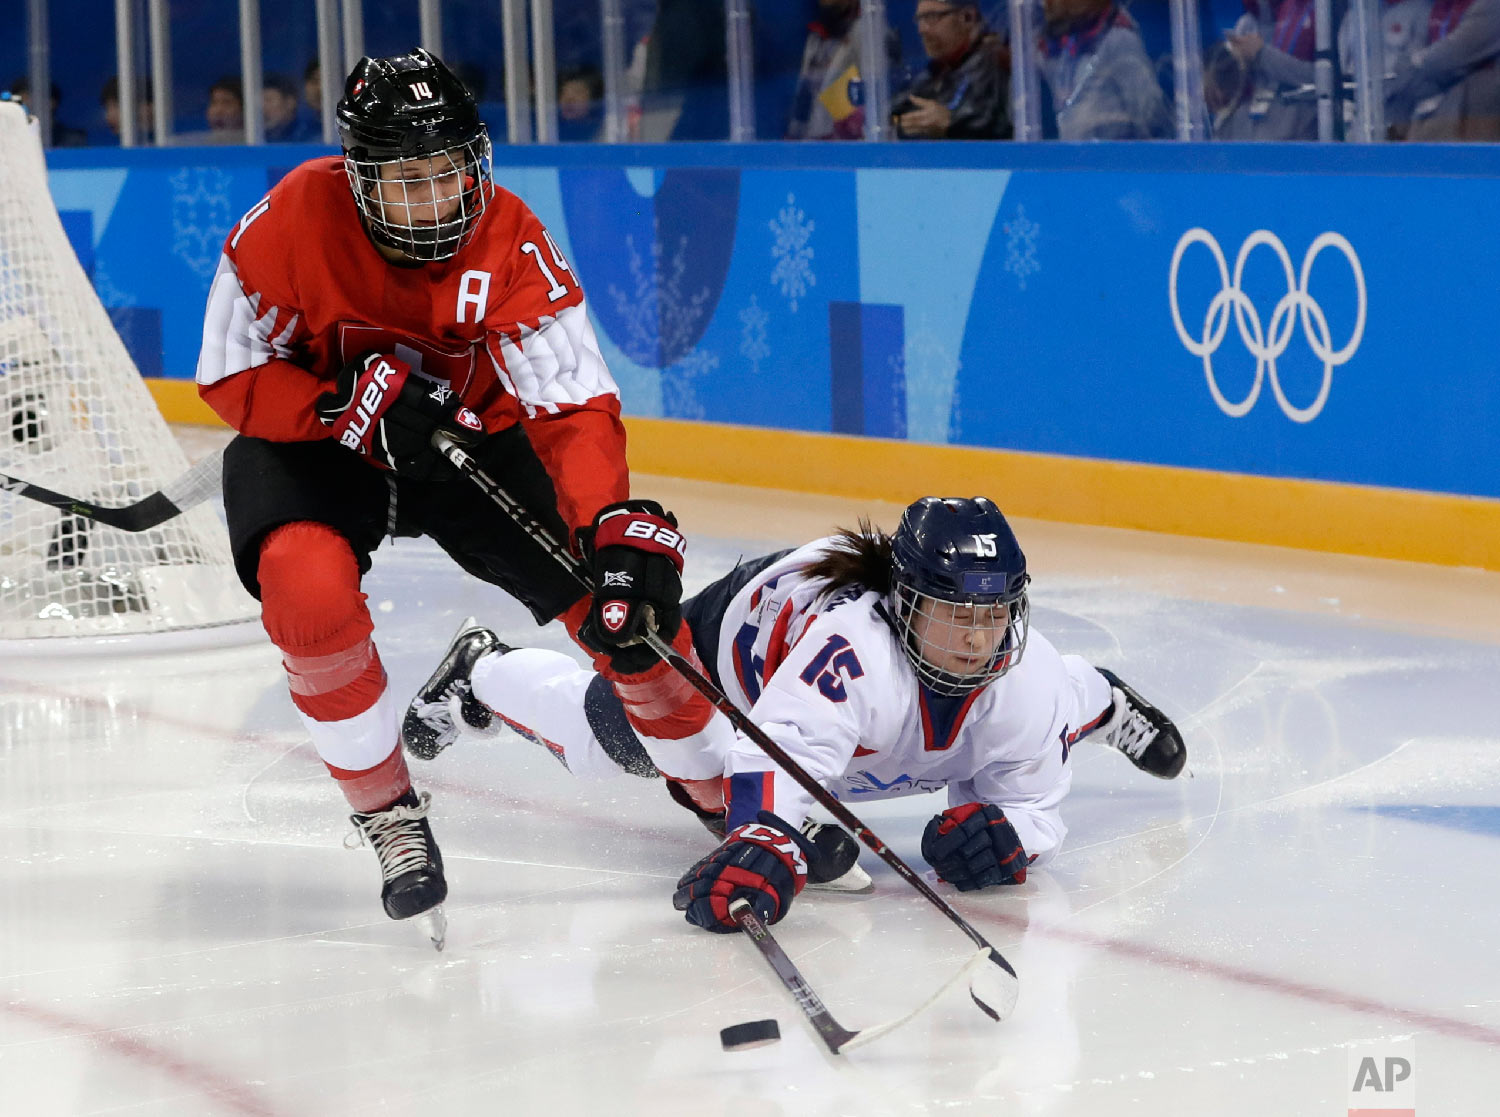 Evelina Raselli (14), of Switzerland, and South Korea's Chaelin Park (15), of the combined Koreas team, battle for the puck during the second period of the preliminary round of the women's hockey game at the 2018 Winter Olympics in Gangneung, South Korea, Saturday, Feb. 10, 2018. (AP Photo/Frank Franklin II)